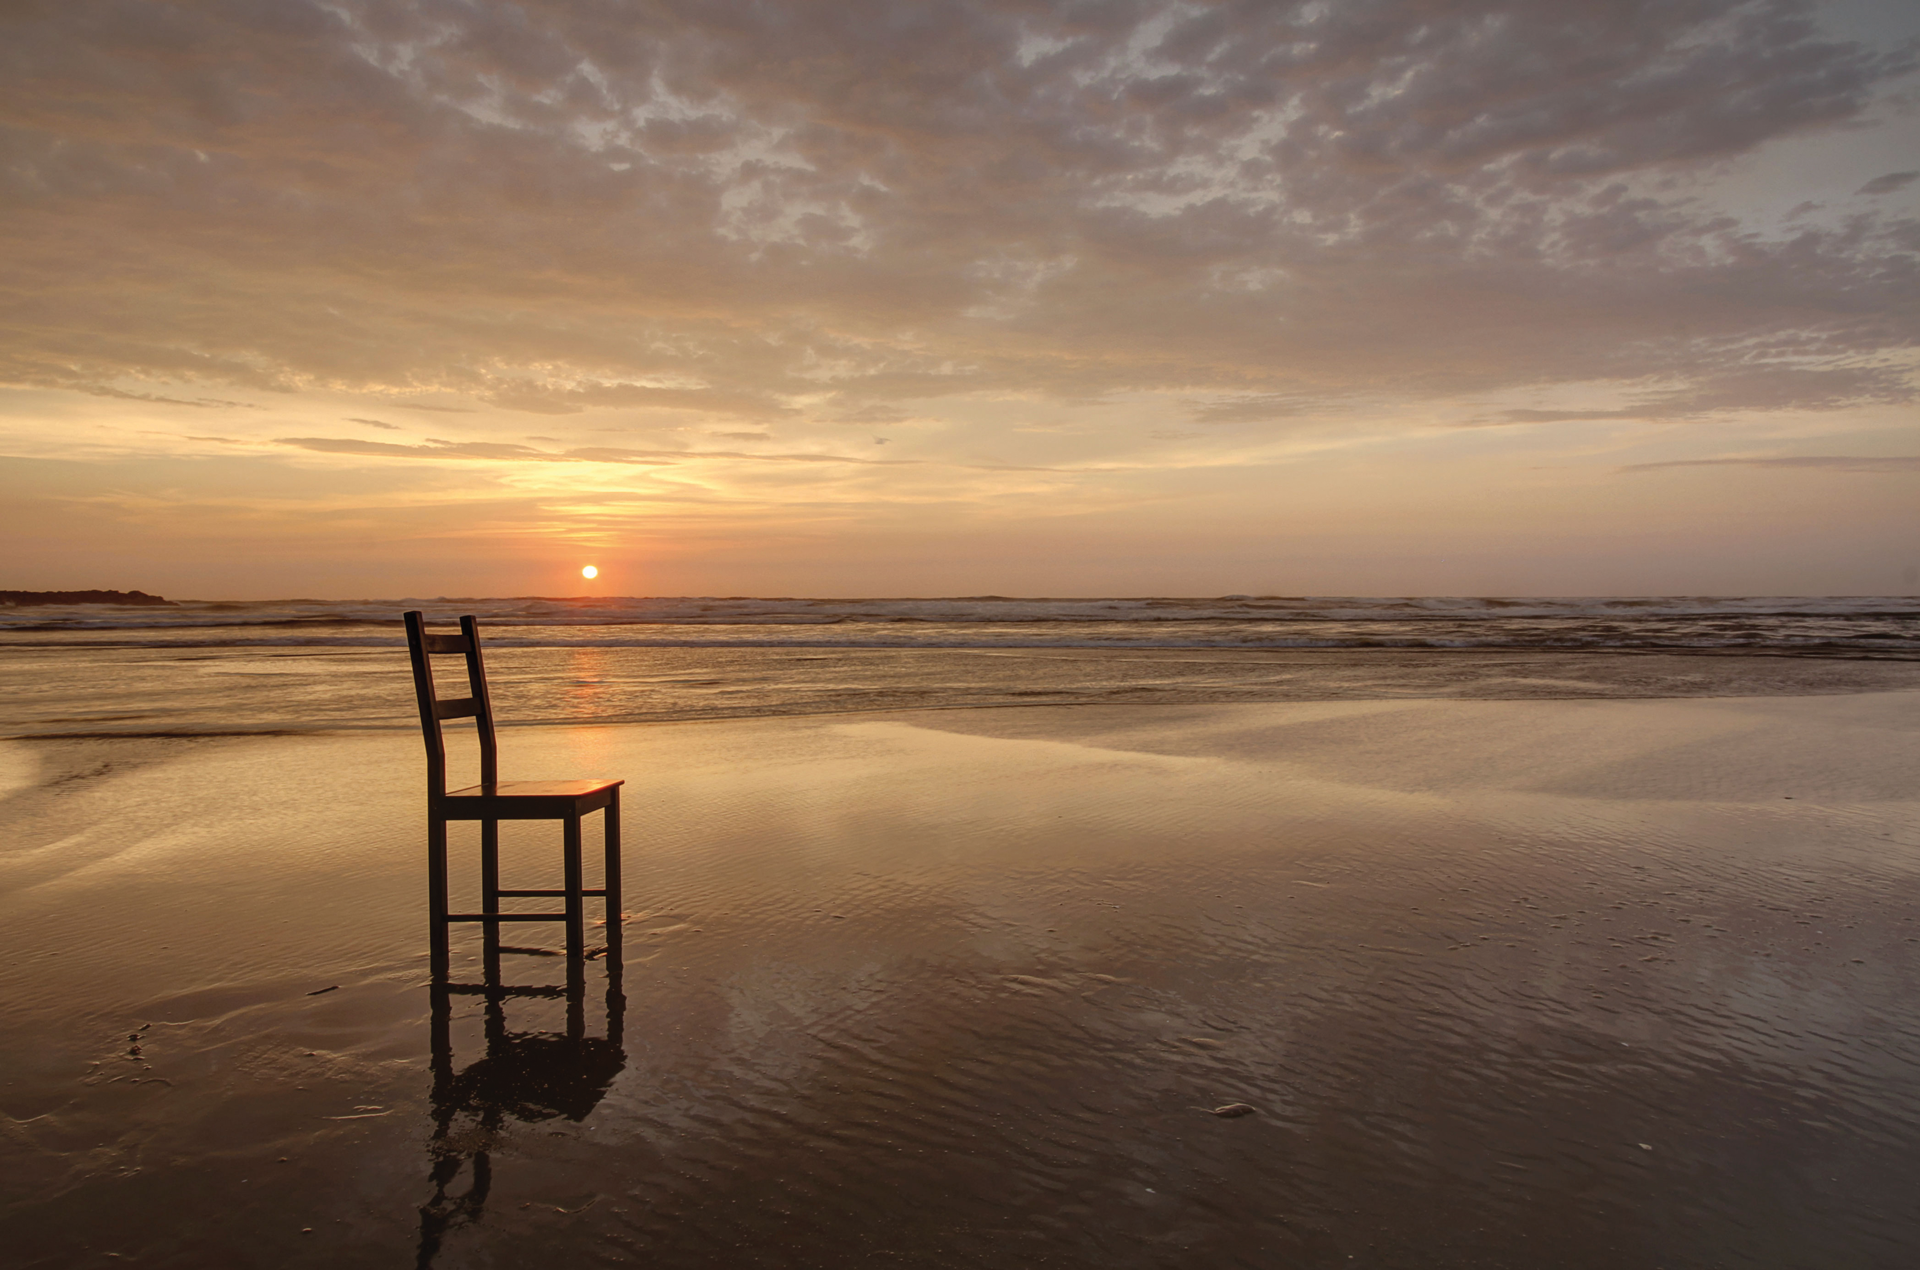 chair in sunset on beach